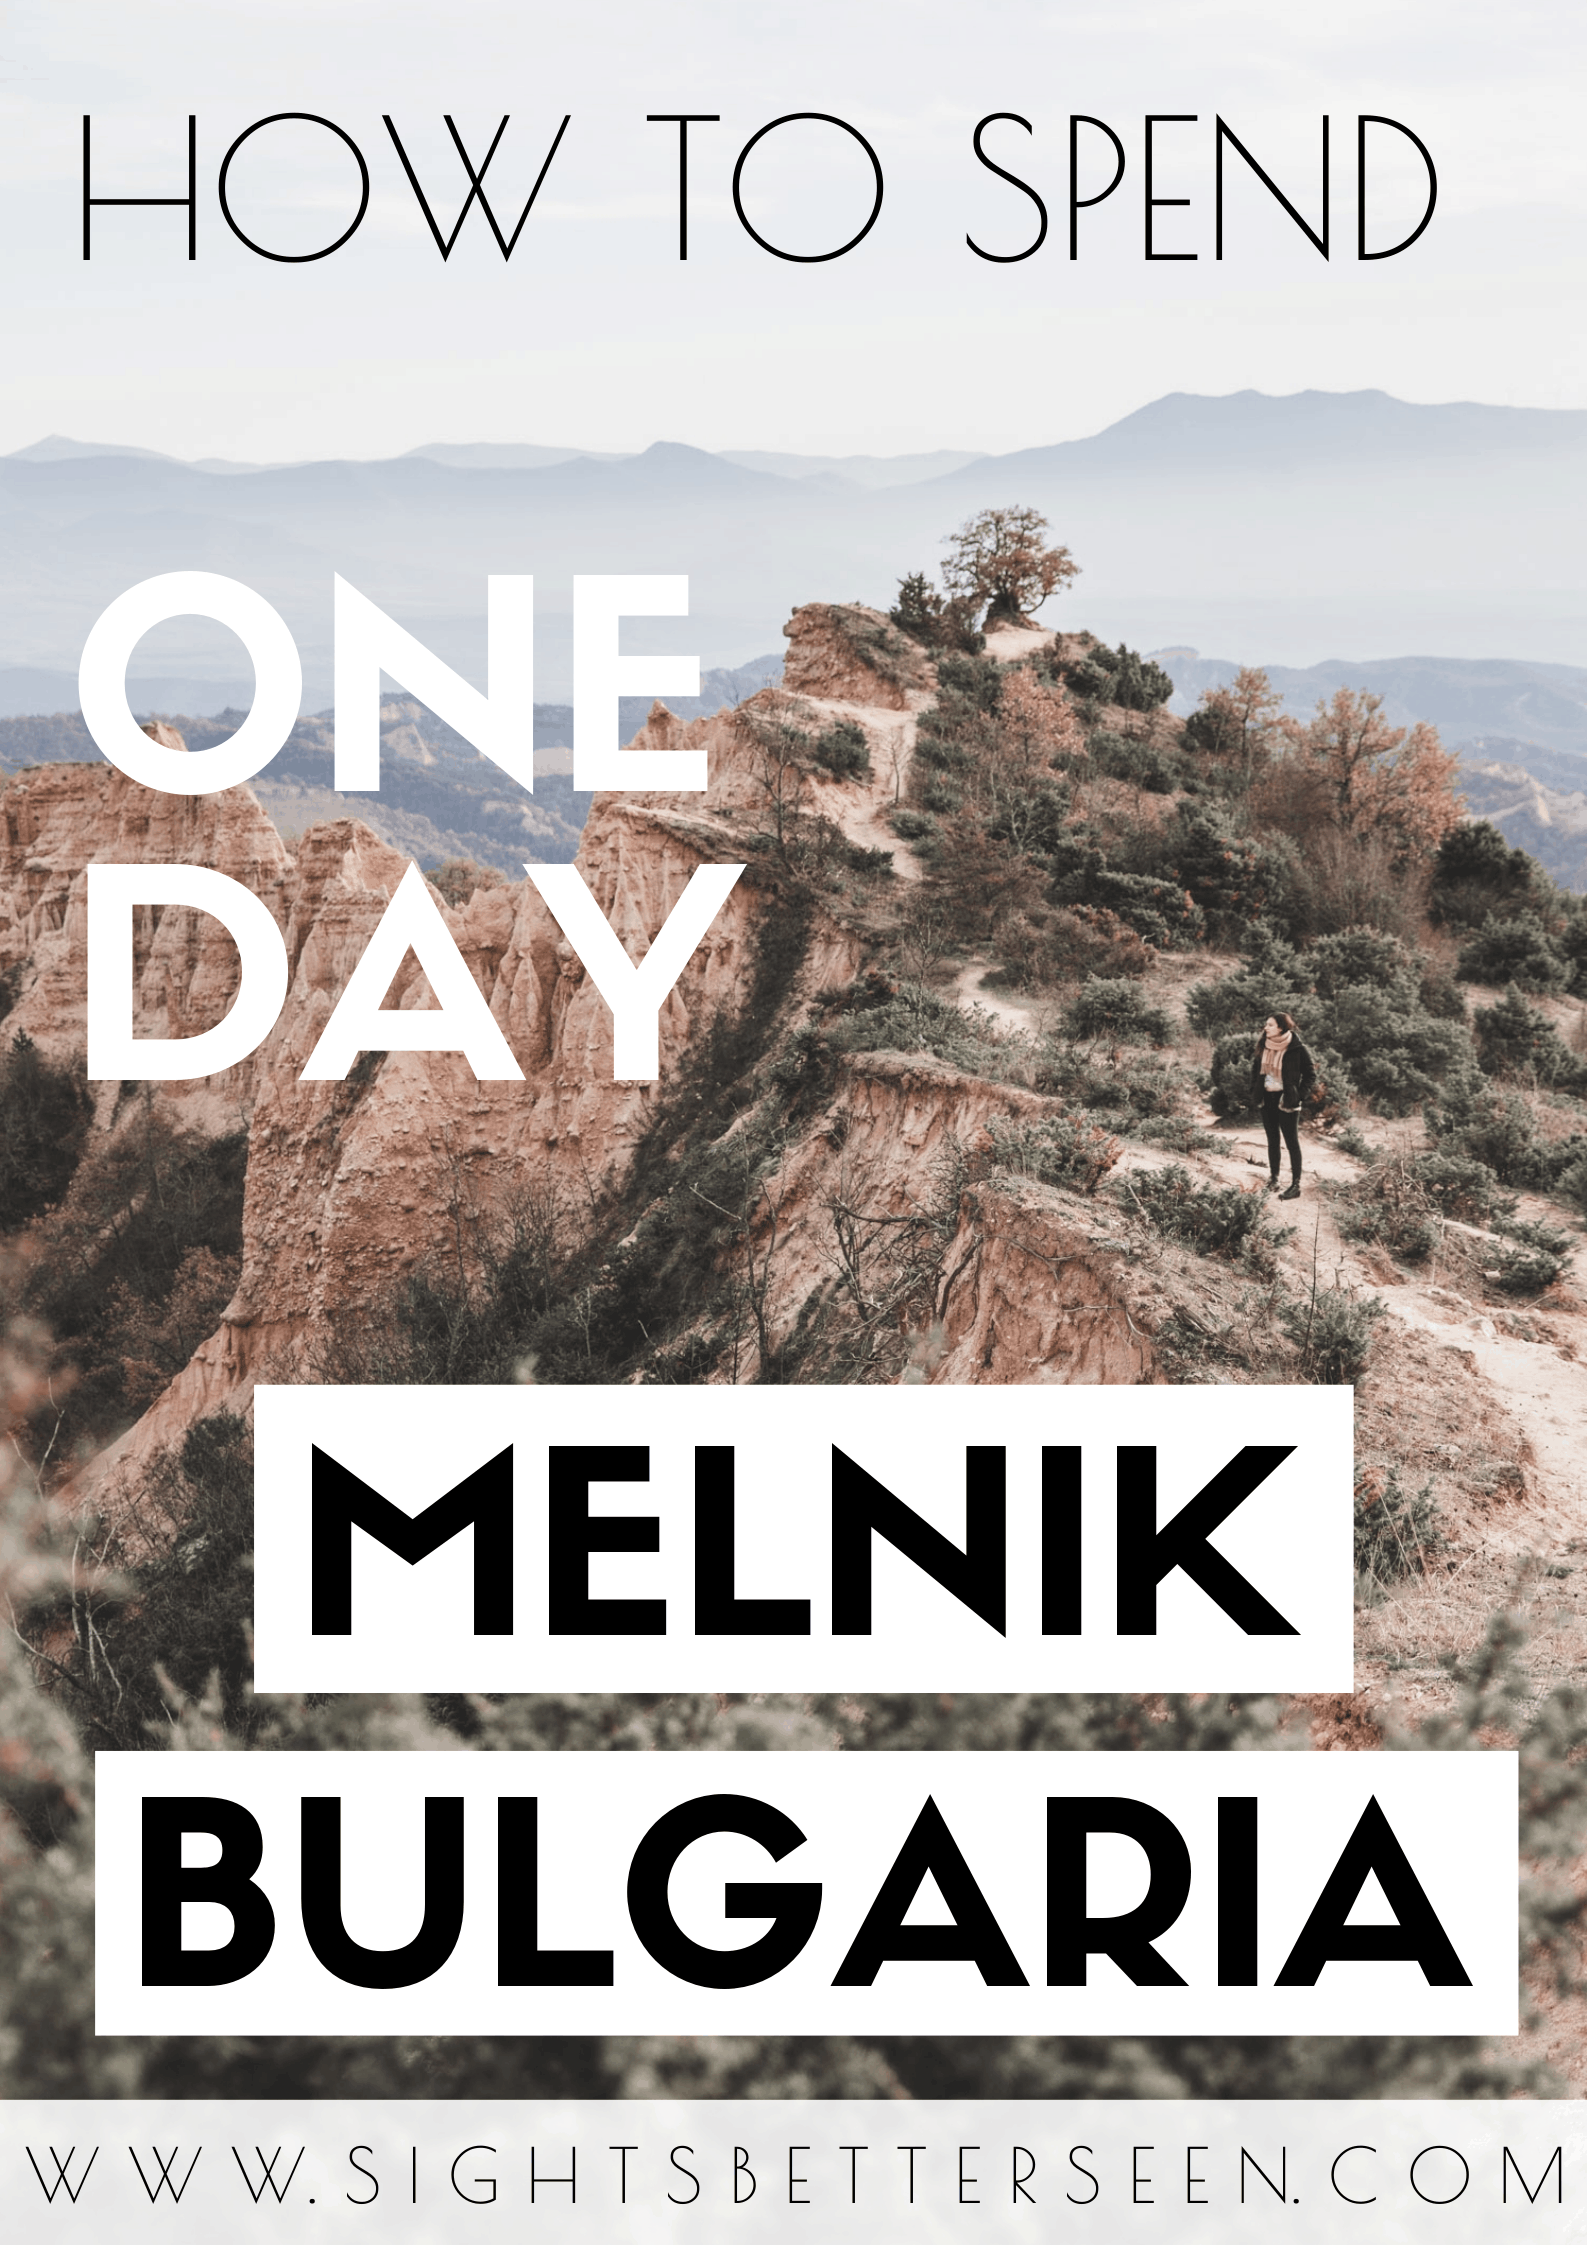 One day itinerary for Melnik, Bulgaria including wine, the Rozhen Monastery, Melnik Pyramids, and the best view of the town! Melnik is the smallest town in Bulgaria known for its wineries.